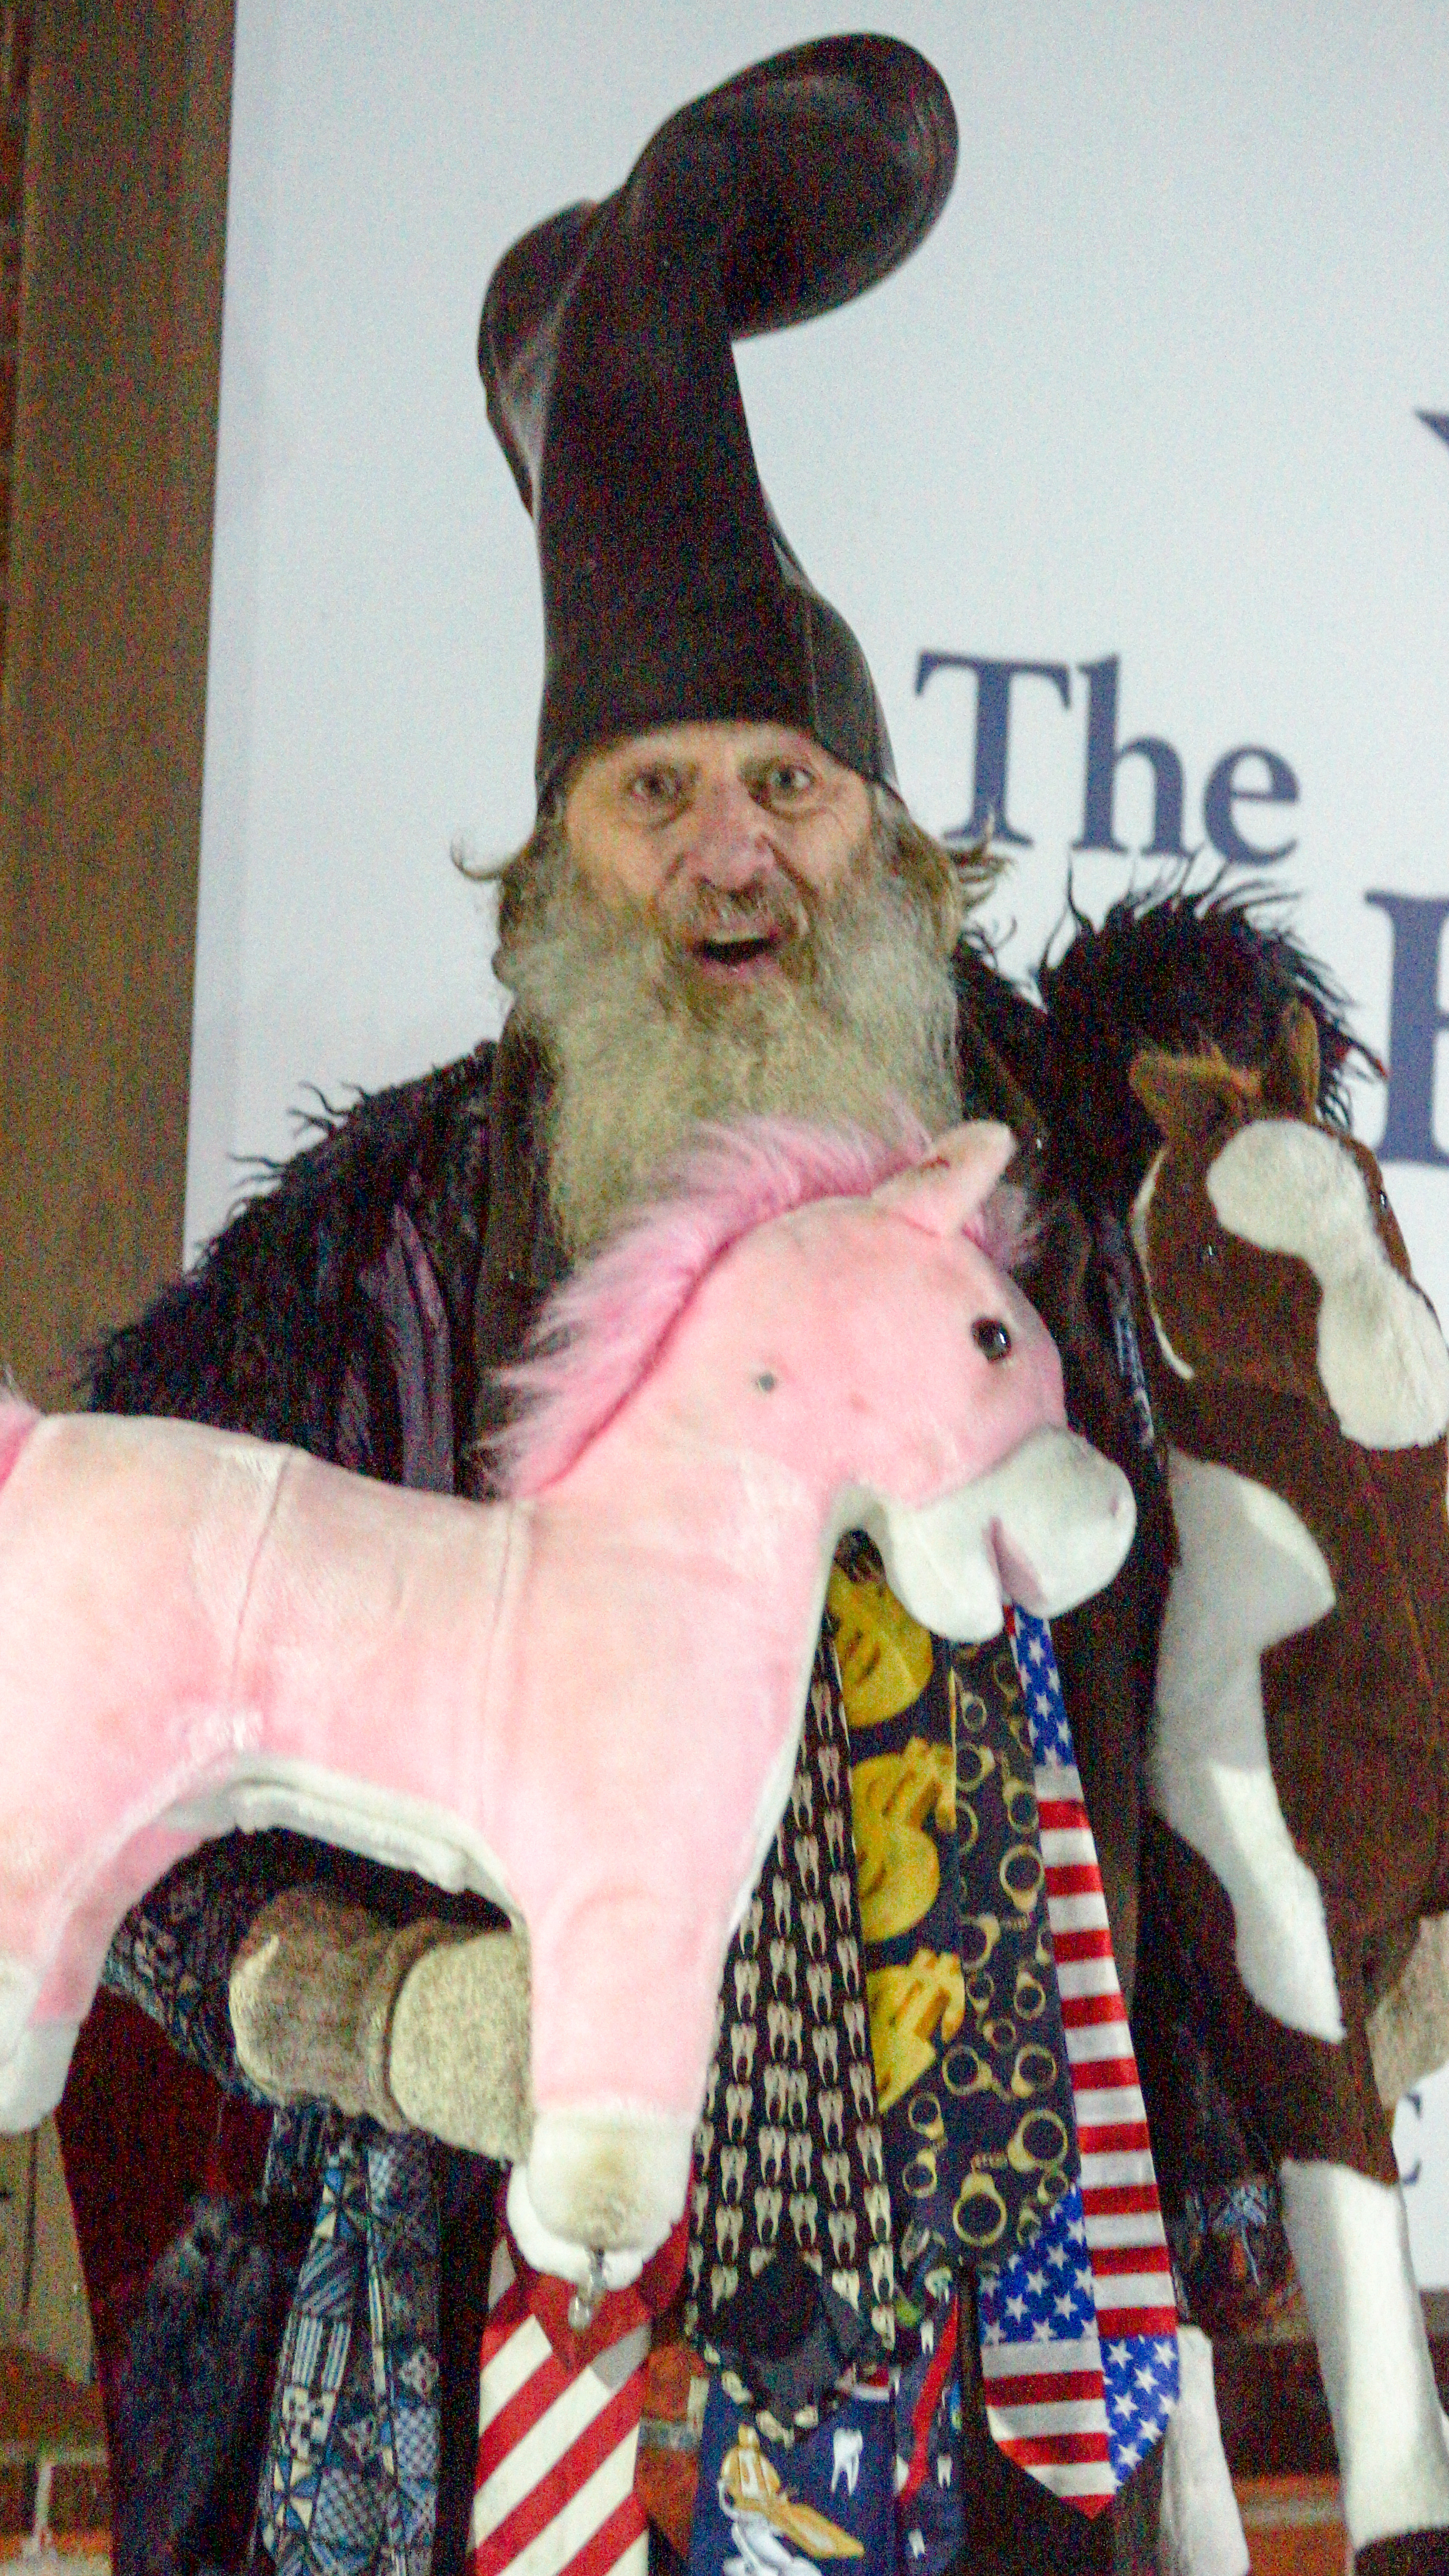 2b5d12ea8b2 File Vermin Supreme with ponies 2.jpg - Wikimedia Commons